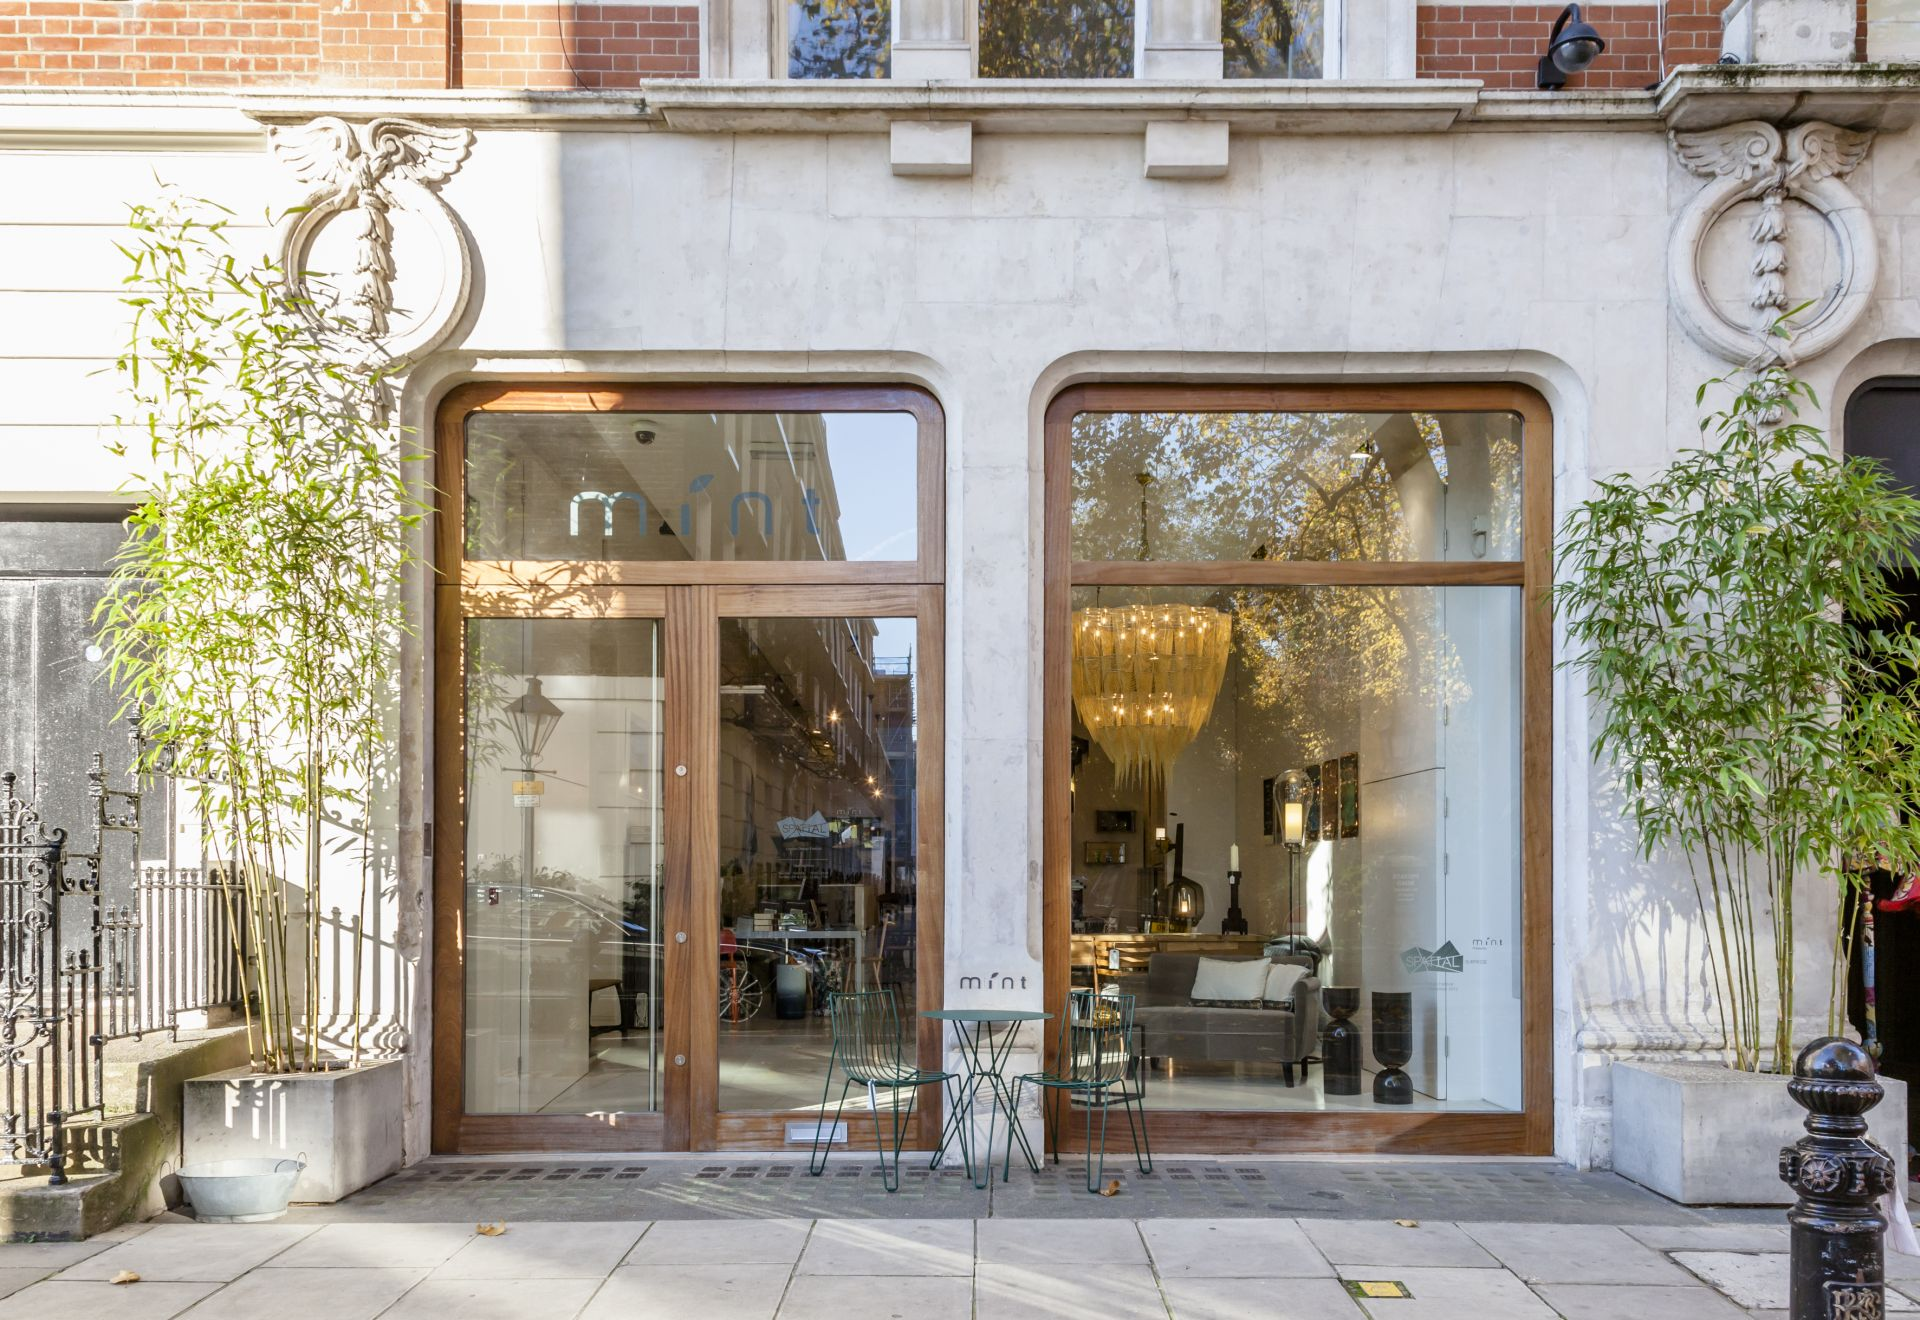 Le vetrine di Mint, quasi all'angolo con Brompton Road nel Brompton Design District di Central London.